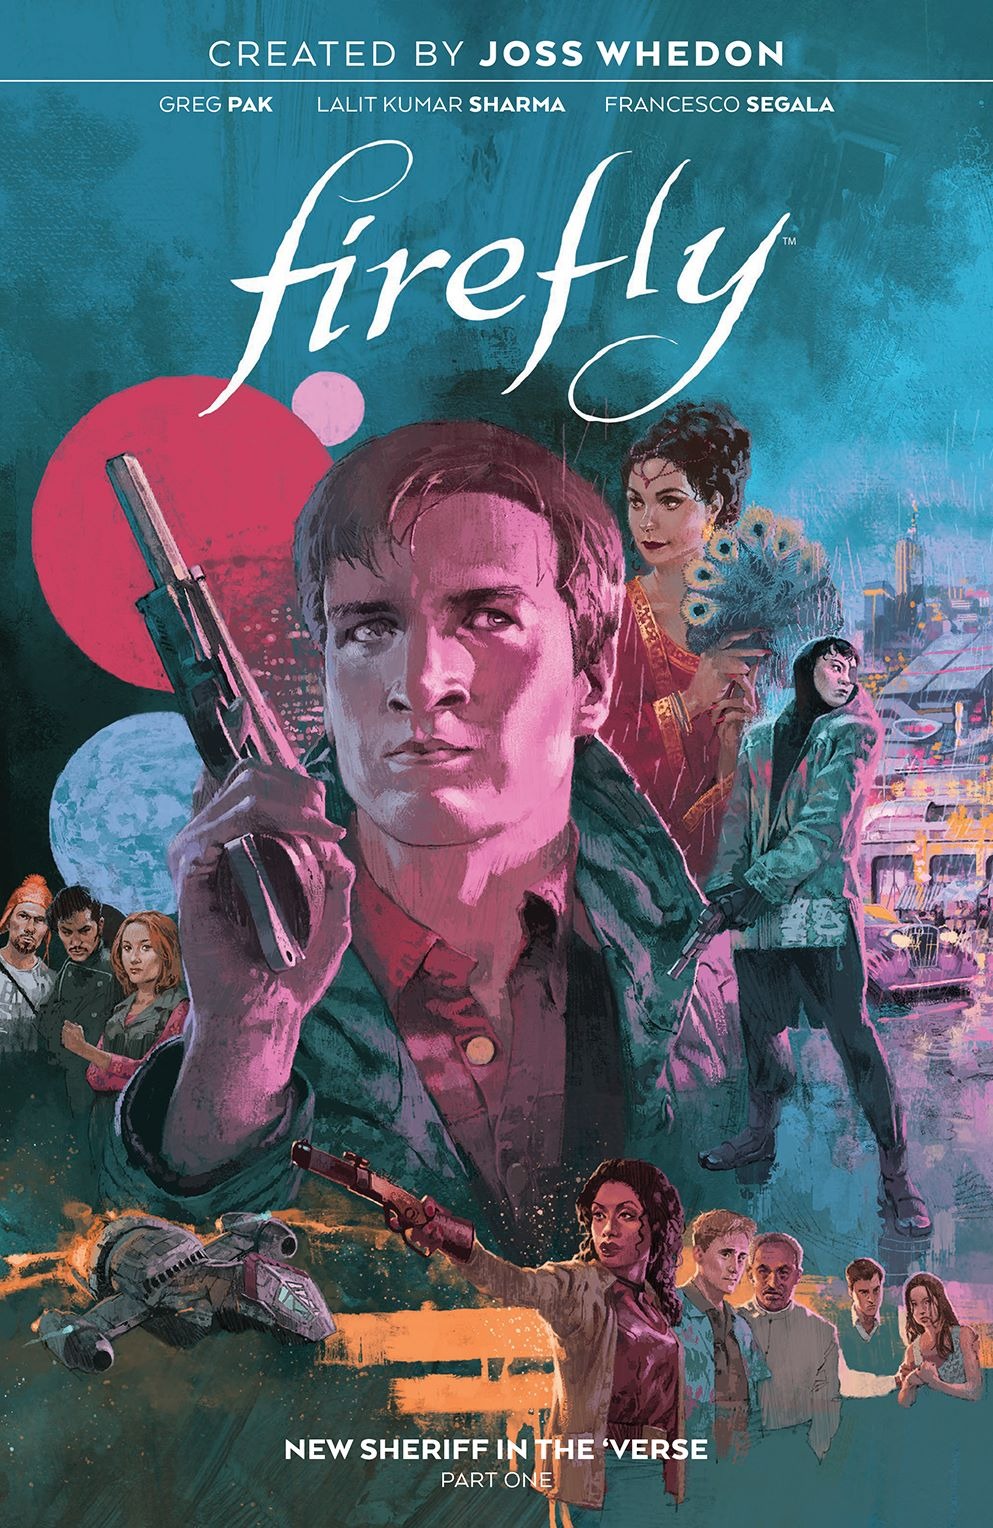 Firefly_NewSheriffVerse_v1_HC_Cover ComicList Previews: FIREFLY NEW SHERIFF IN THE 'VERSE VOLUME 1 HC